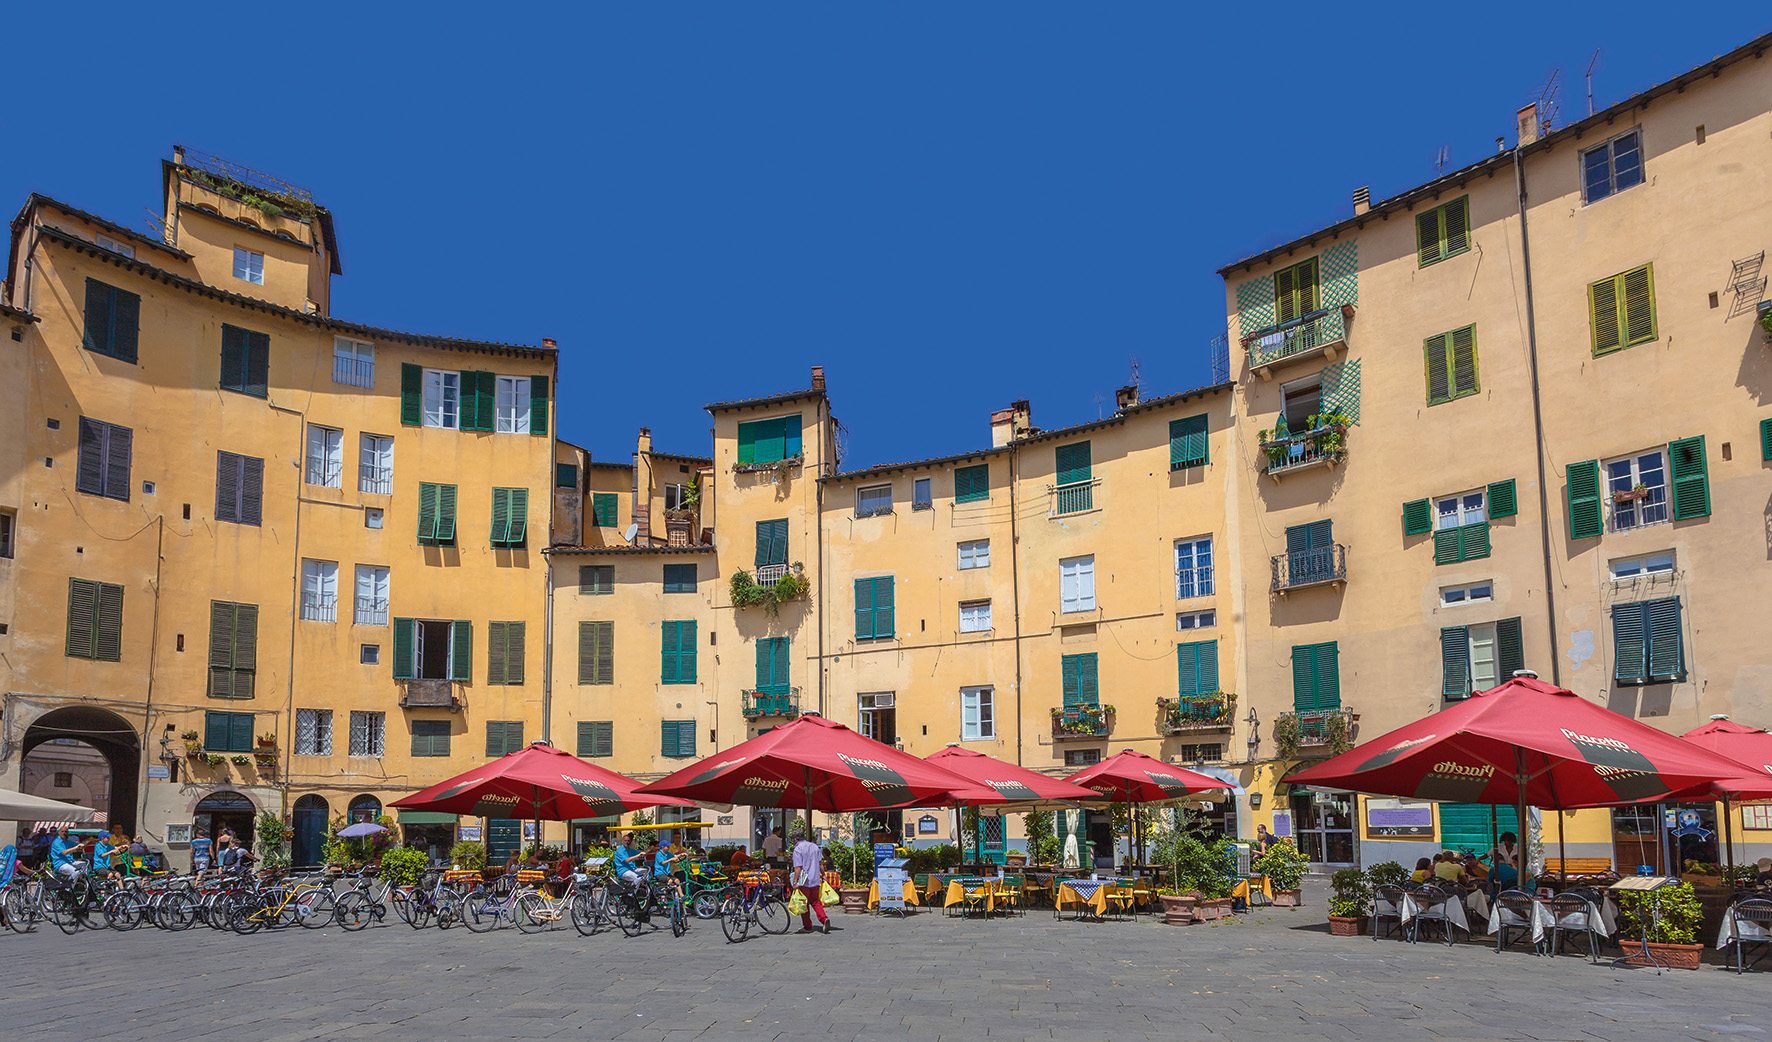 Coffee shops in Lucca